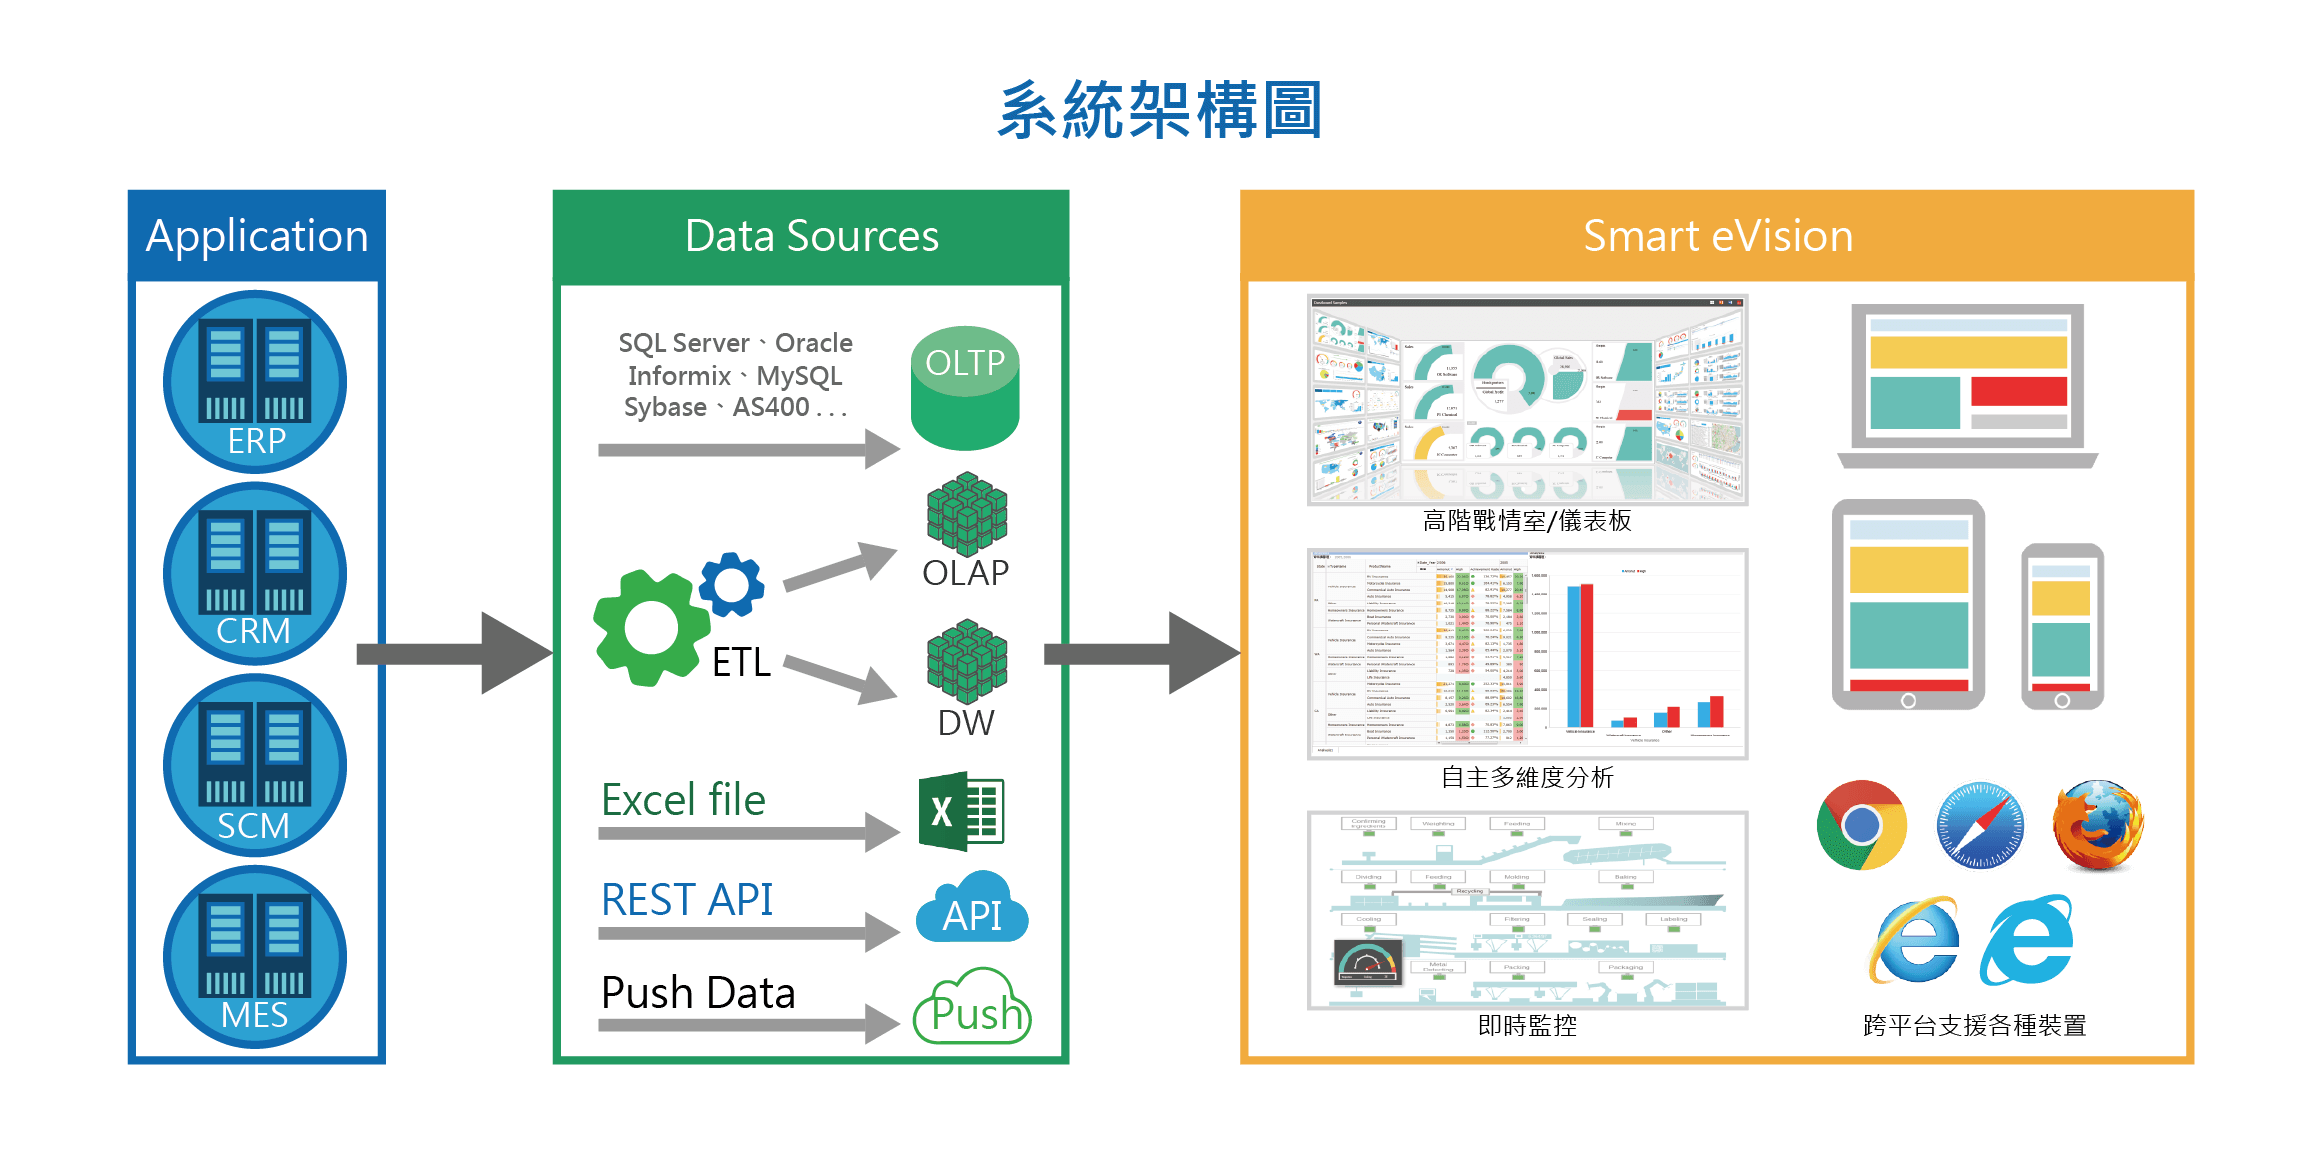 系統架構圖,erp,crm,scm,mes,Data Sources